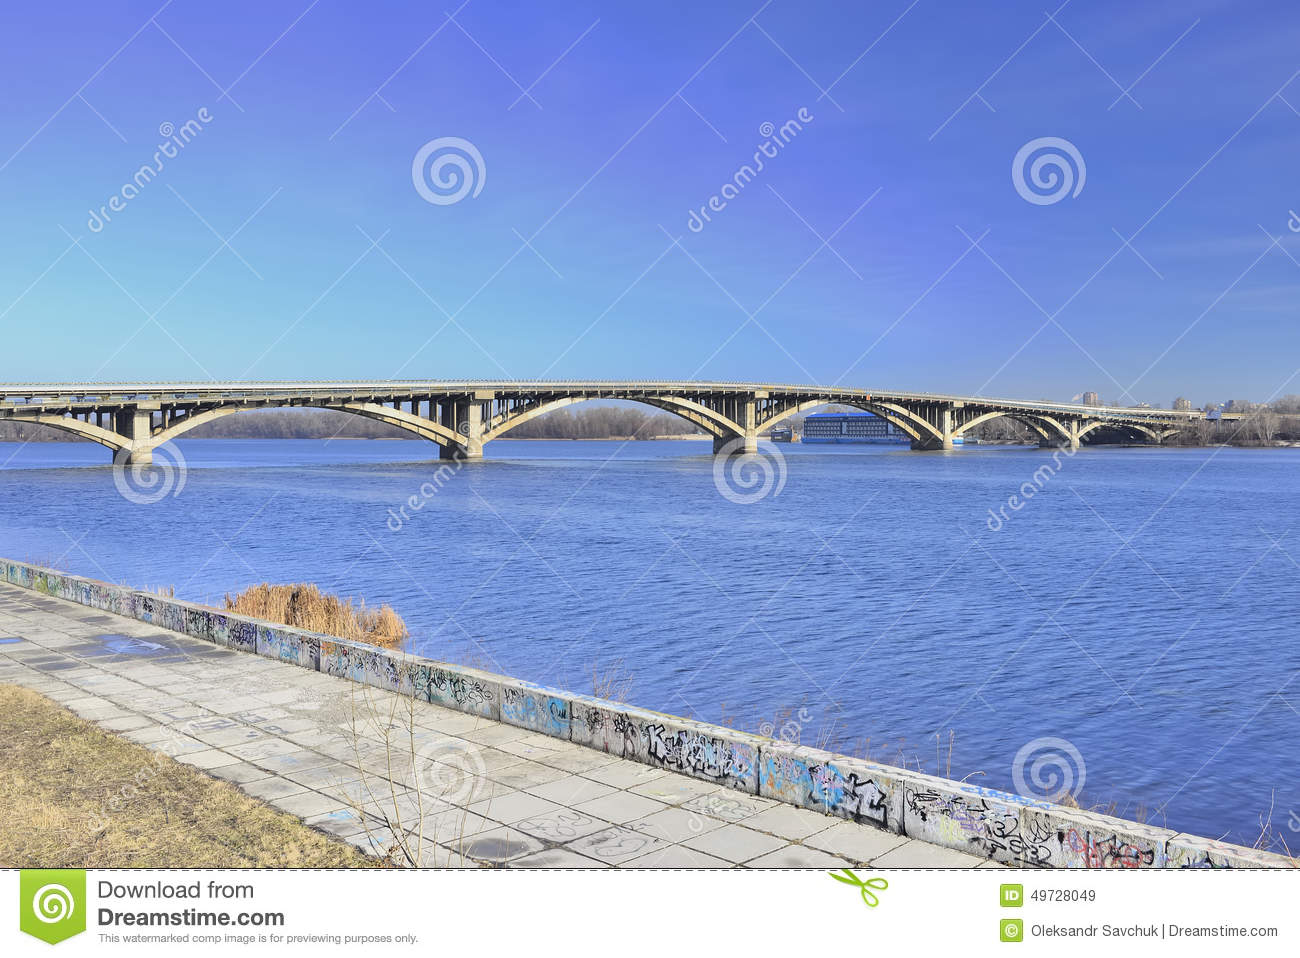 View of the bridge Metro across the Dnieper river